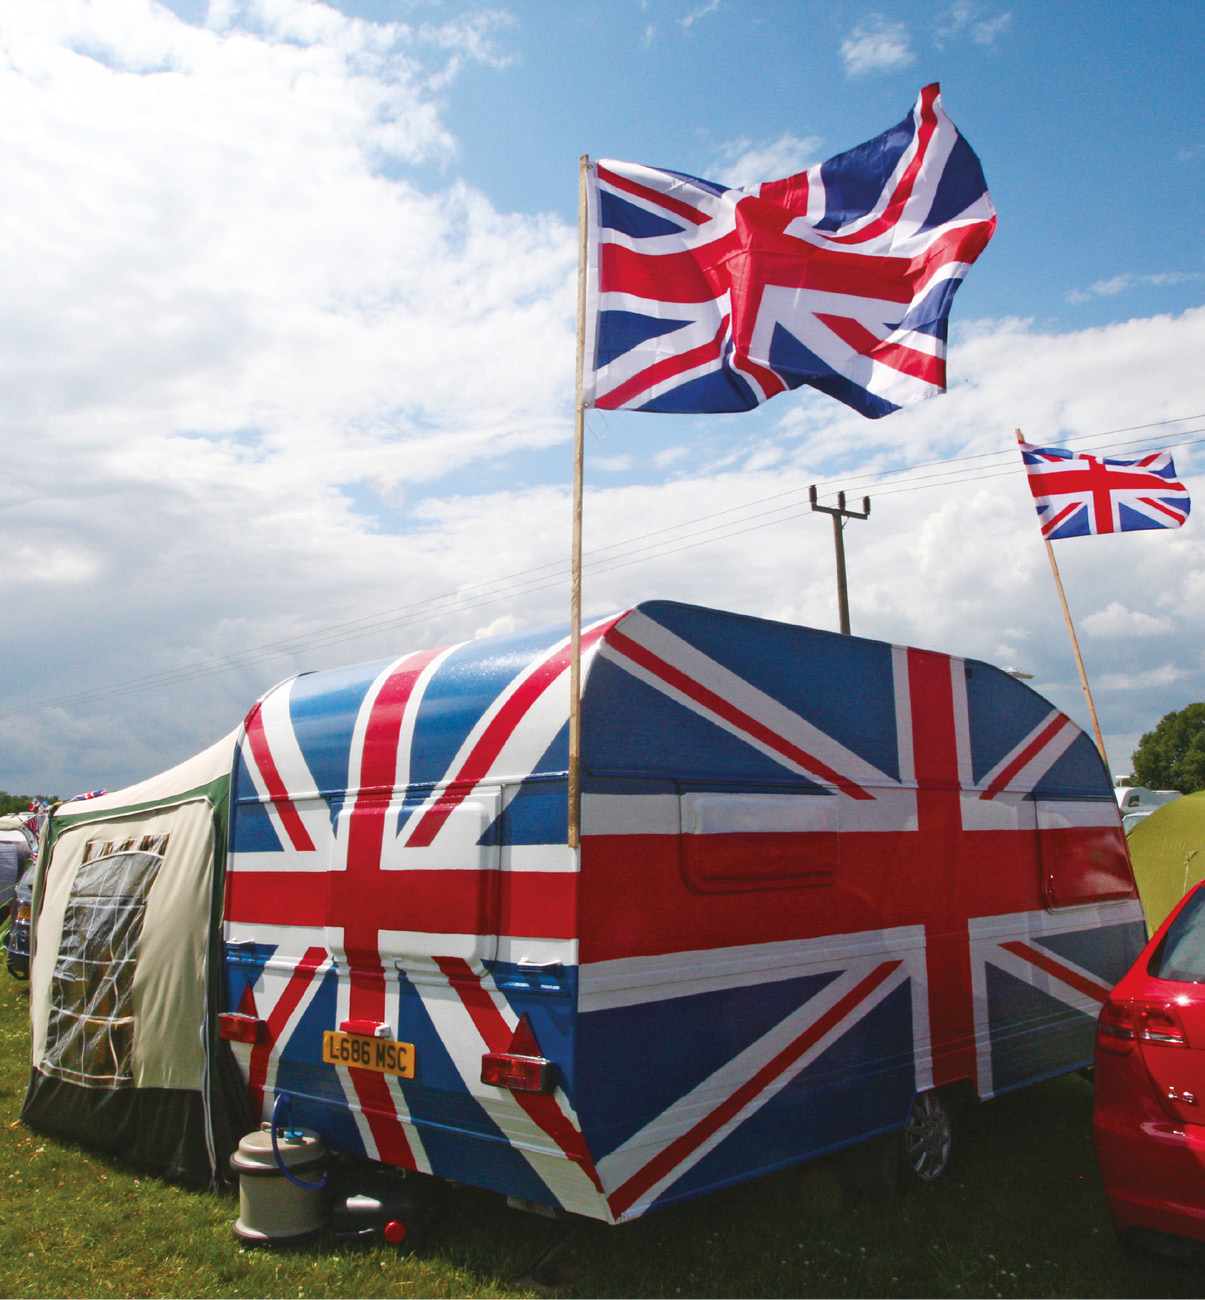 Some incredibly passionate, and patriotic, fans can be found camping at the British Grand Prix